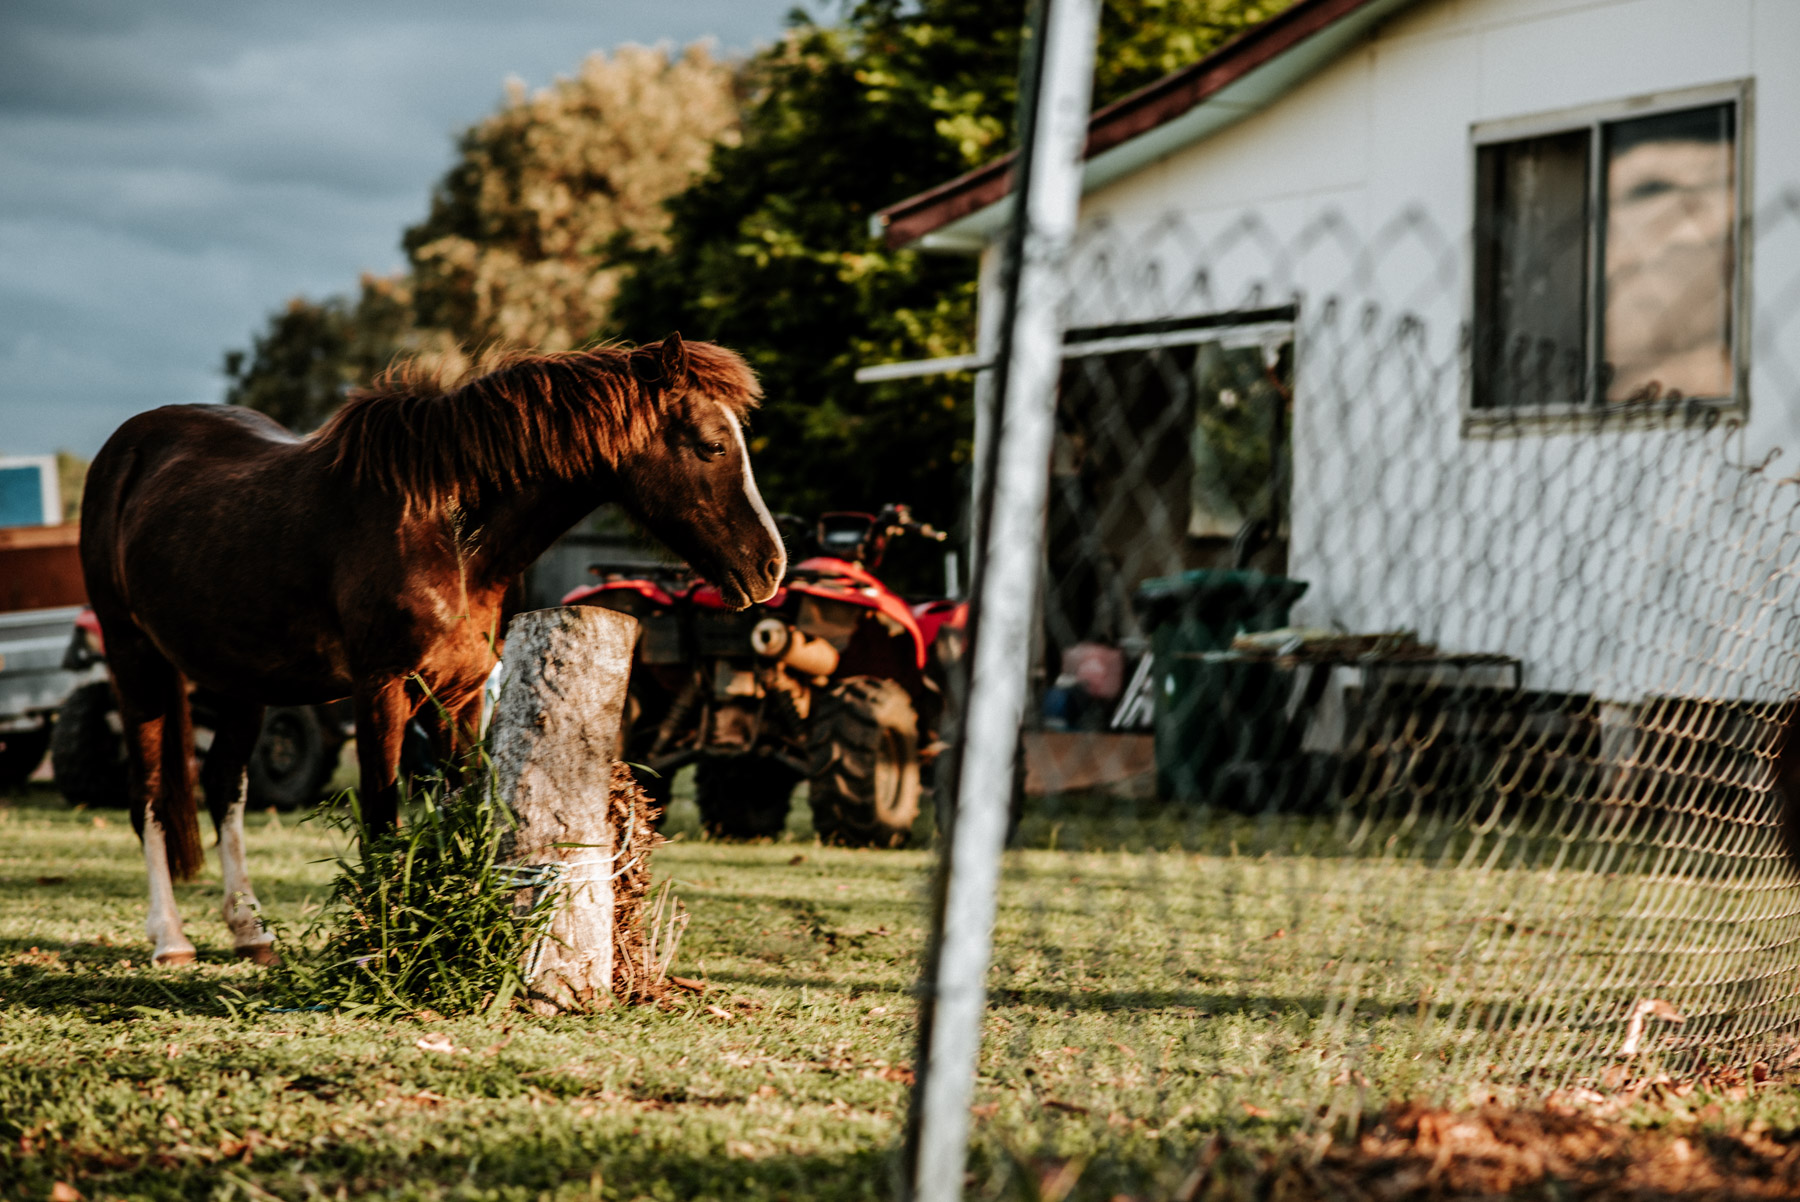 country_queensland_photography_scotts-83.jpg